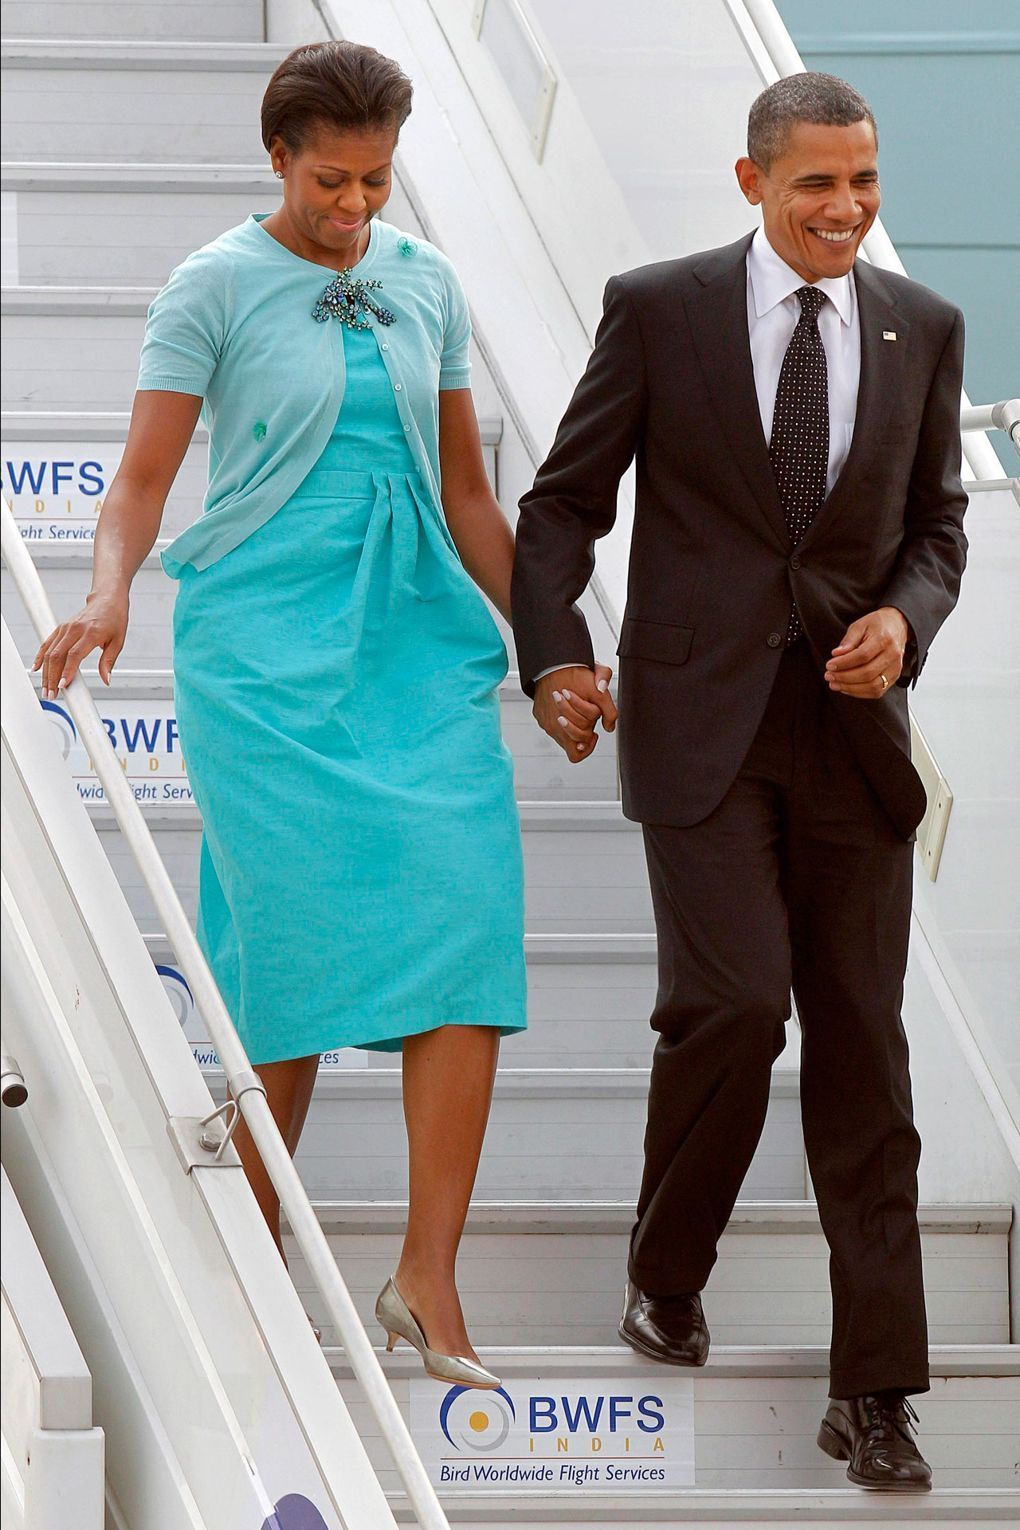 The First Lady wore a custom-made dress by Peter Som to arrive in New Delhi, India, the second stop on her three-day visit to the world's largest democracy with husband Barack.